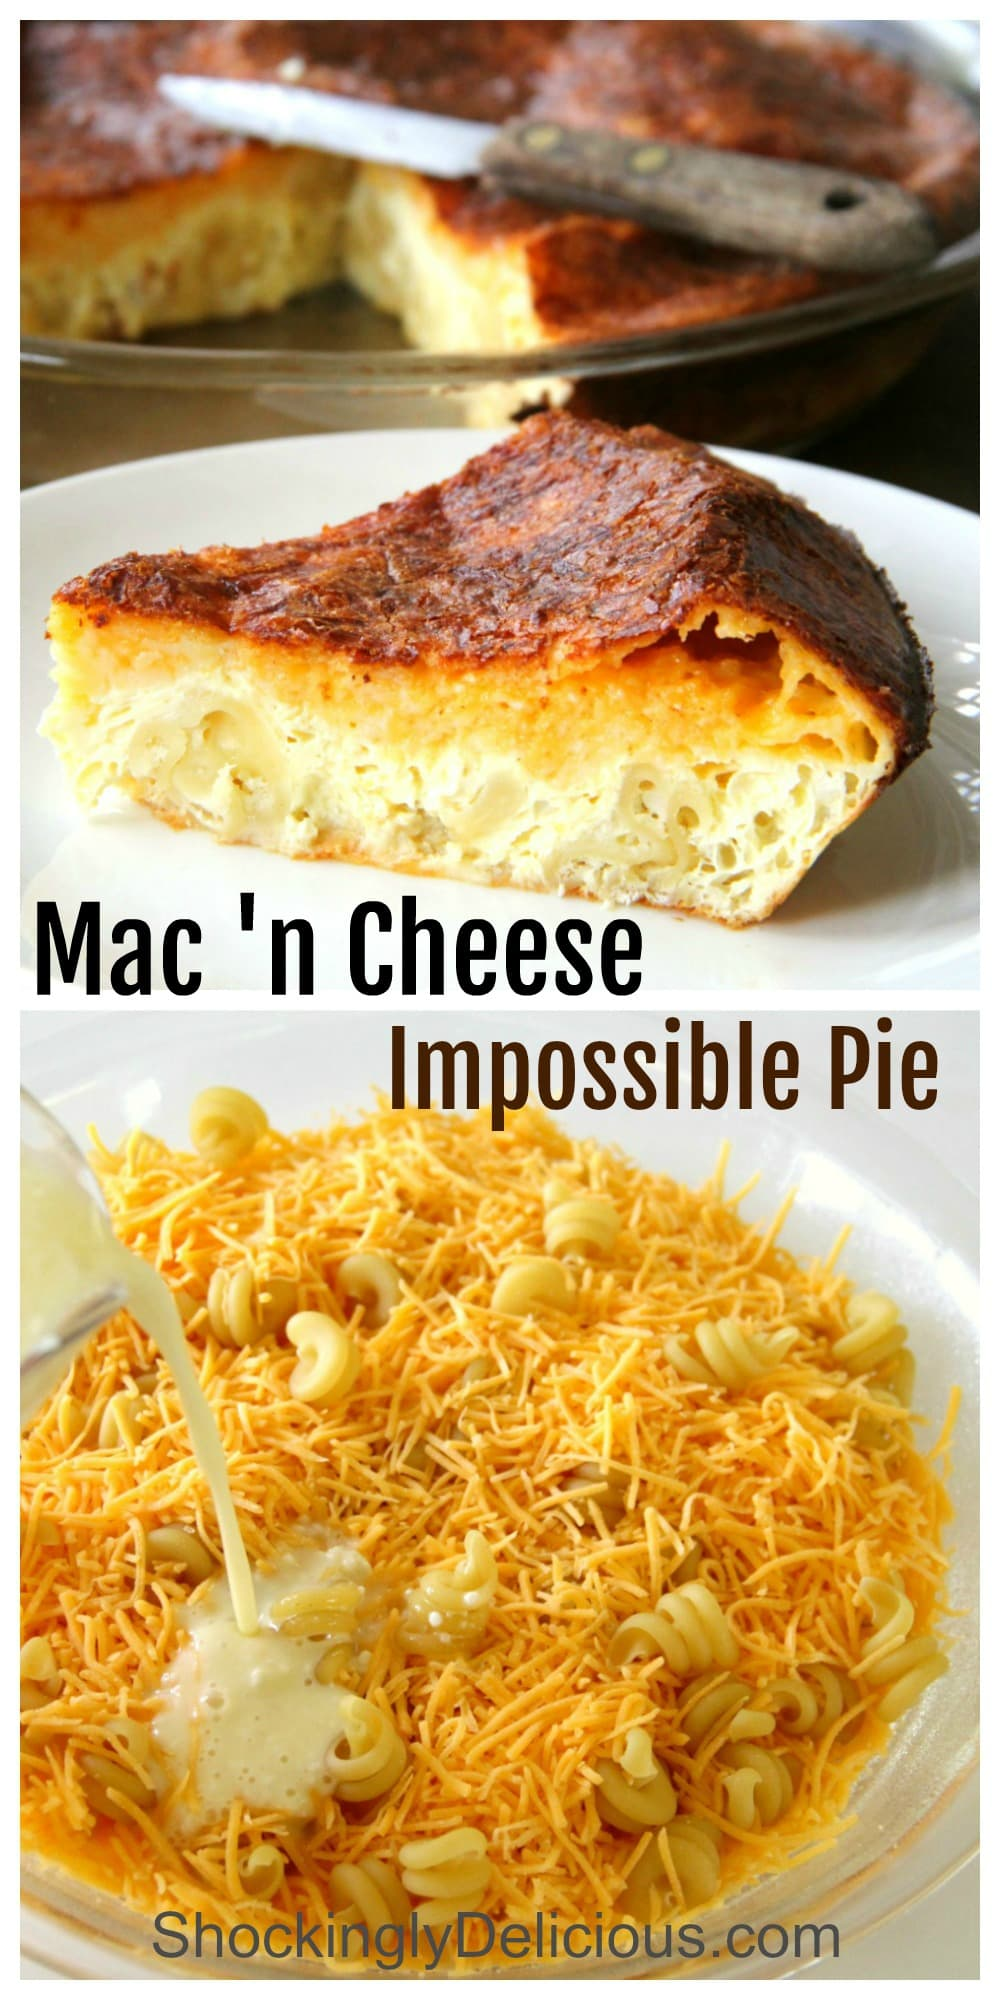 Wedge of Mac n Cheese Impossible Pie and a photo showing how to assemble it